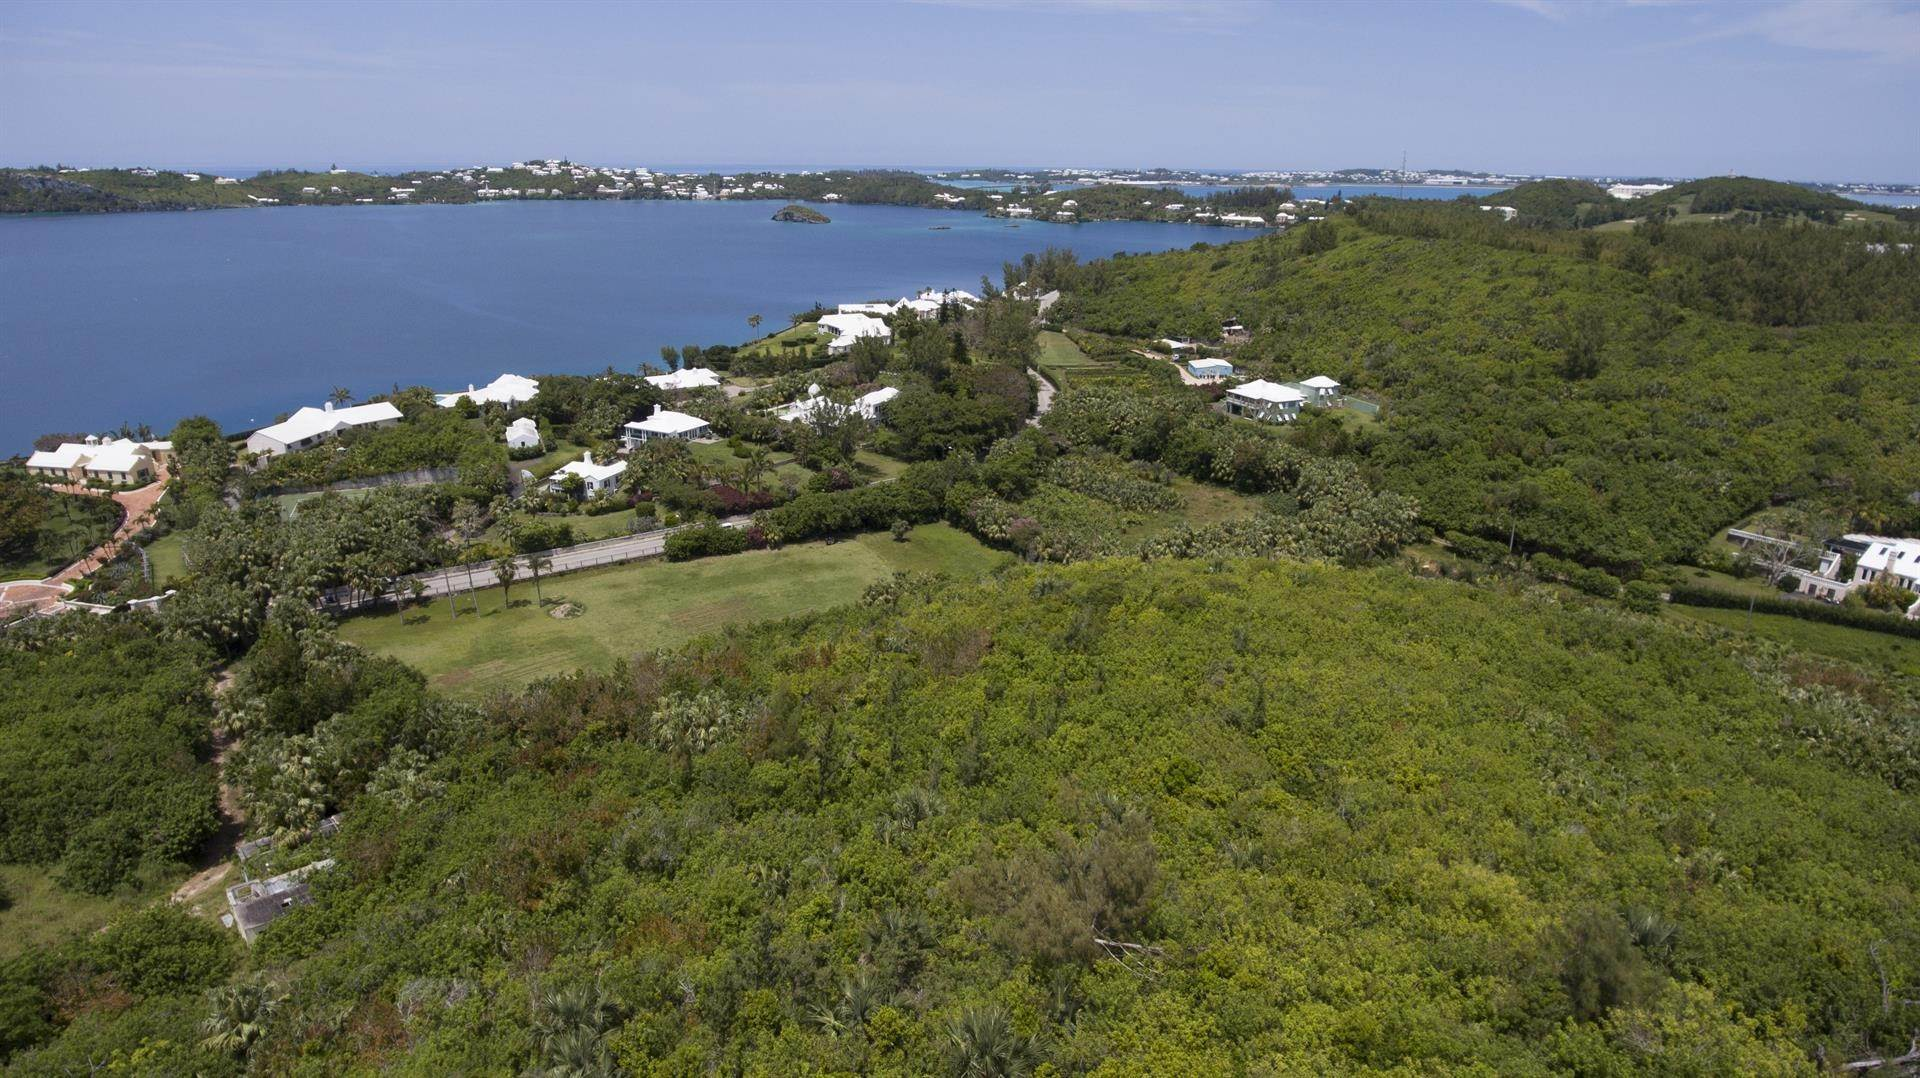 Terreno / Lote por un Venta en North Estate: Arrowroot Lane Building Lot North Estate: Arrowroot Lane Building Lot, Arrowroot Lane,Bermuda – Sinclair Realty